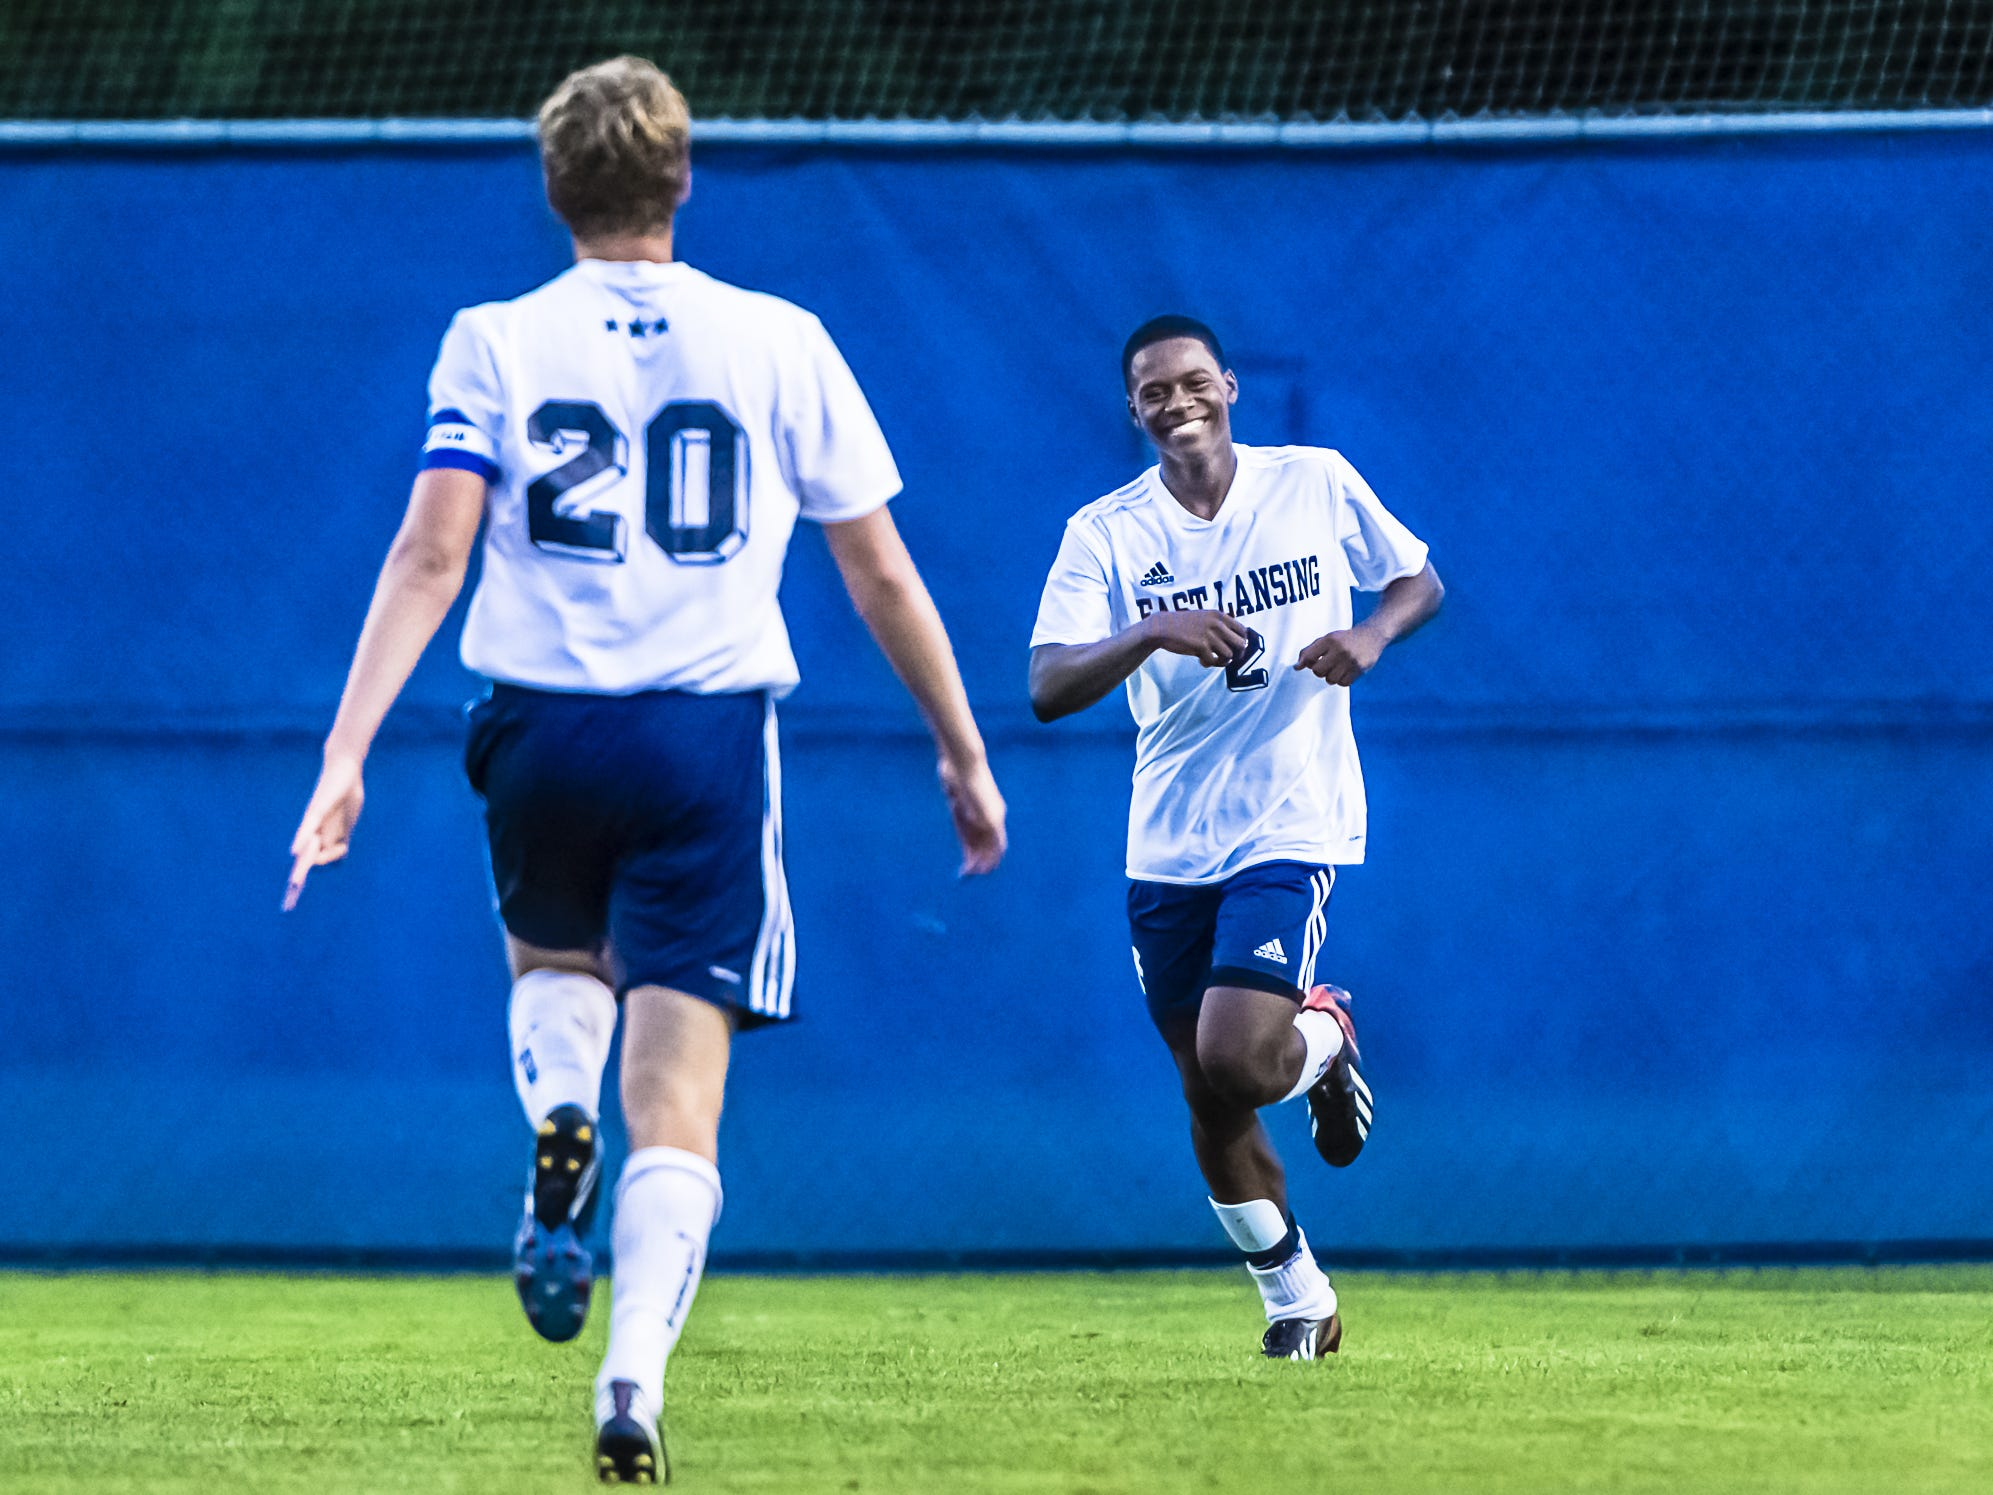 Dejuan Jones (right) of East Lansing smiles as he runs to teammate Grant Brogan after scoring what would be the game winning goal early in the 2nd half of their game with Holt Wednesday September 11, 2013 in East Lansing.  Holt would score later to narrow the Trojan lead to 3-2.